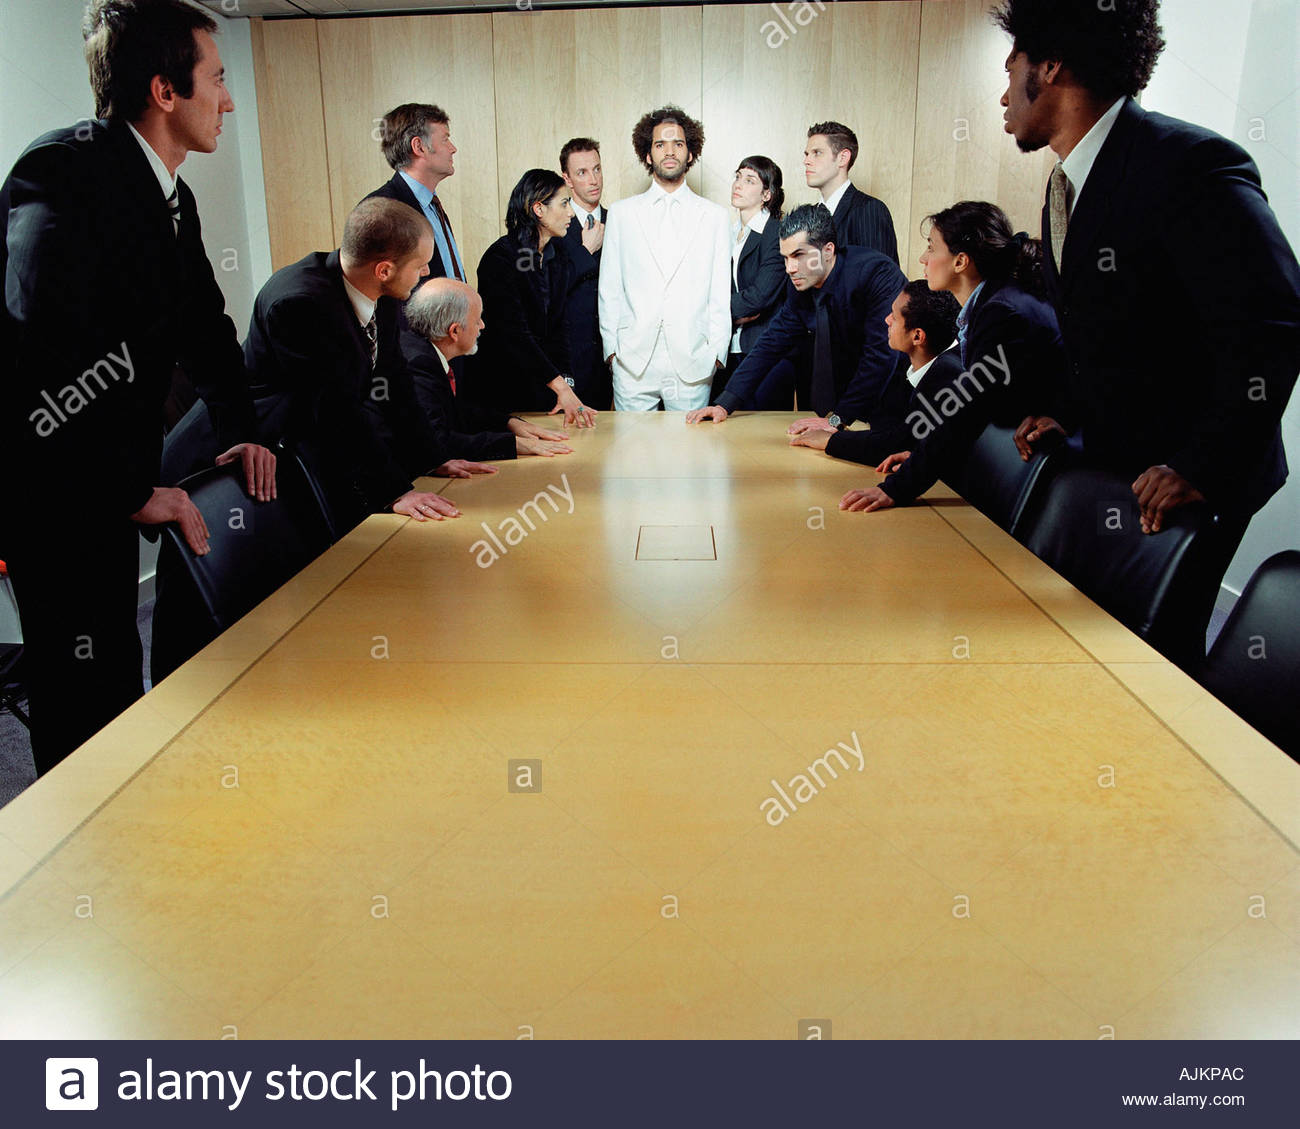 African american businessman in group of caucasians - Stock Image